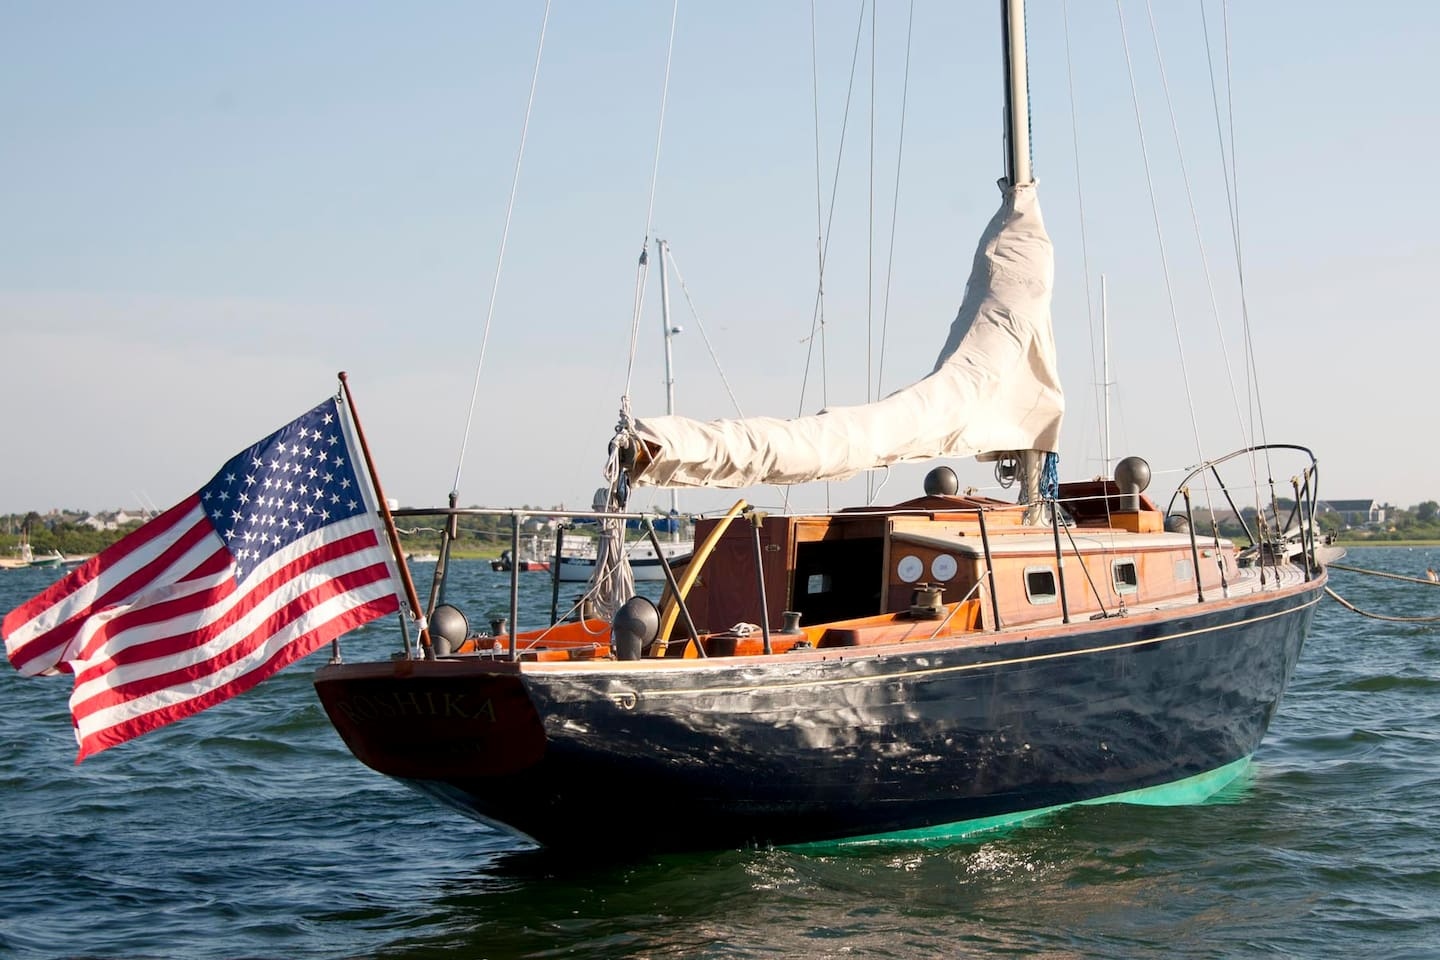 Located on a private mooring in Nantucket Harbor